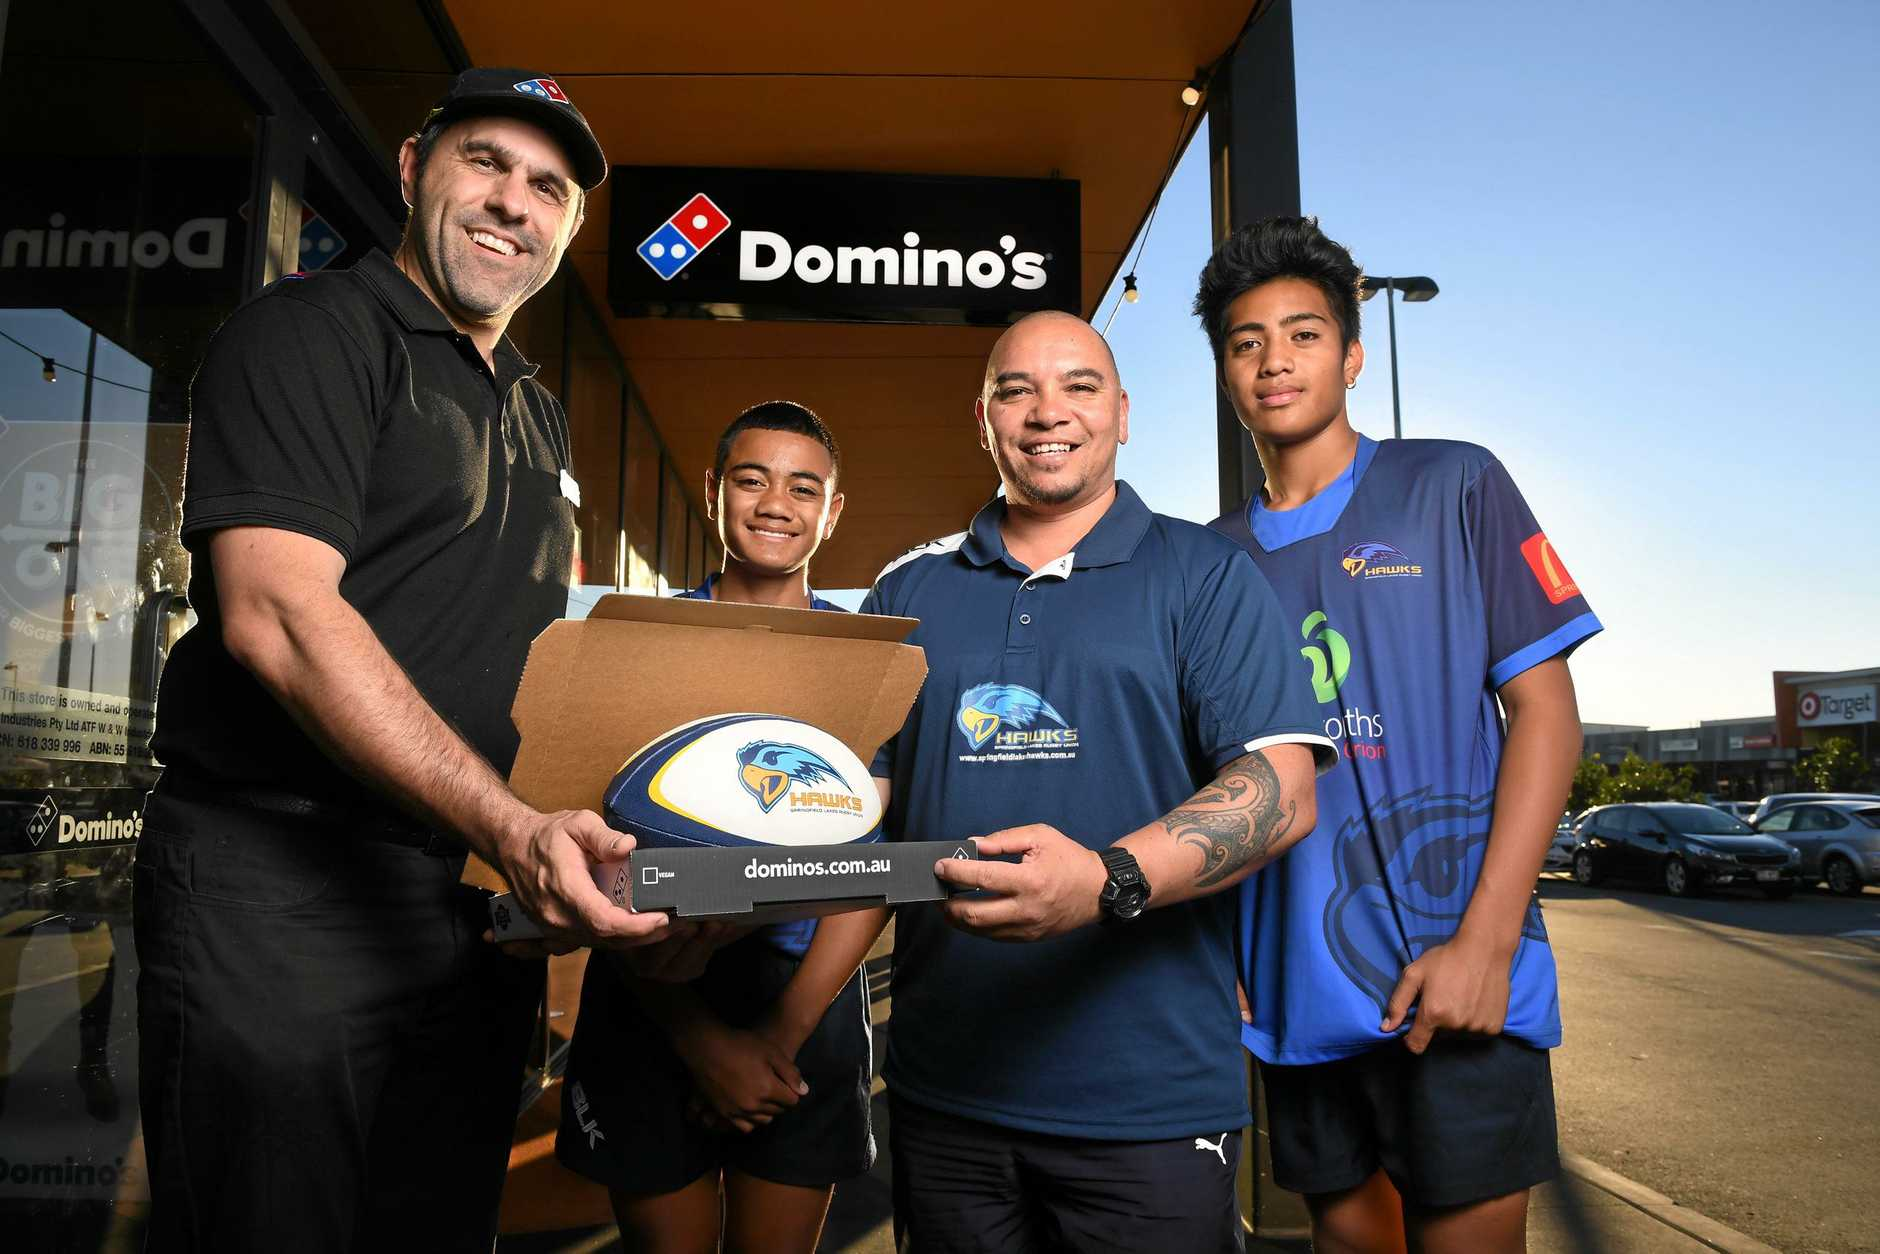 Domino's franchisee Morgan Wilkins is holding a fundraiser to raise money for the Springfield Lakes Hawks Rugby Union Club. Pictured with player Tafito Ahki, sponsorship coordinator Nathan Ferrier and player Henry Segi.